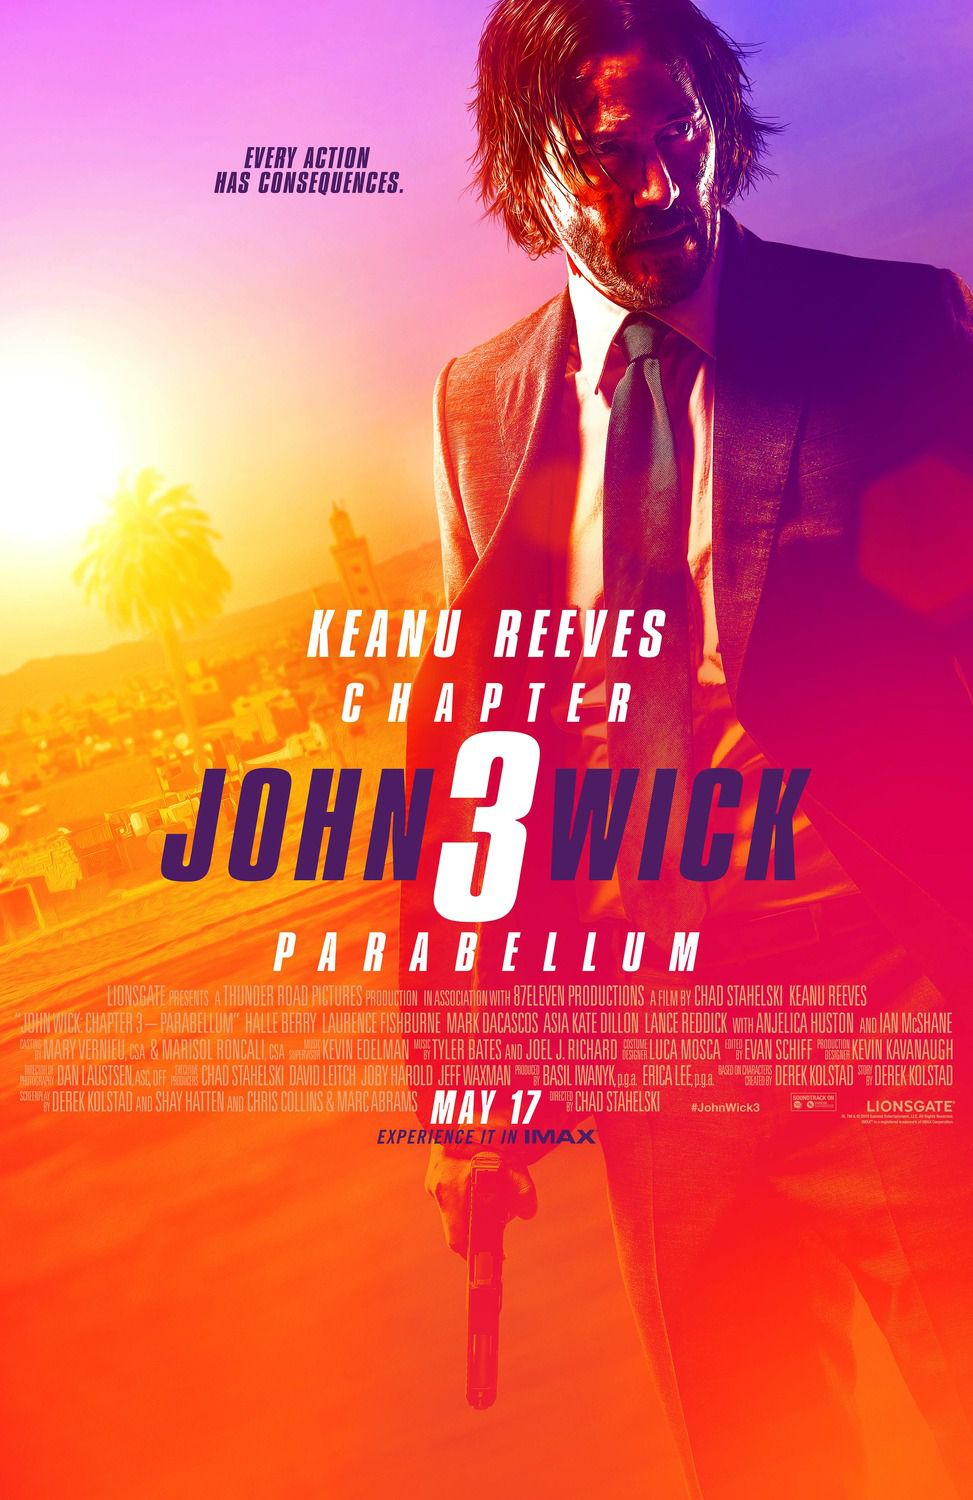 John Wick Chapter 3 - Parabellum 2019 Every action has consequences - poster